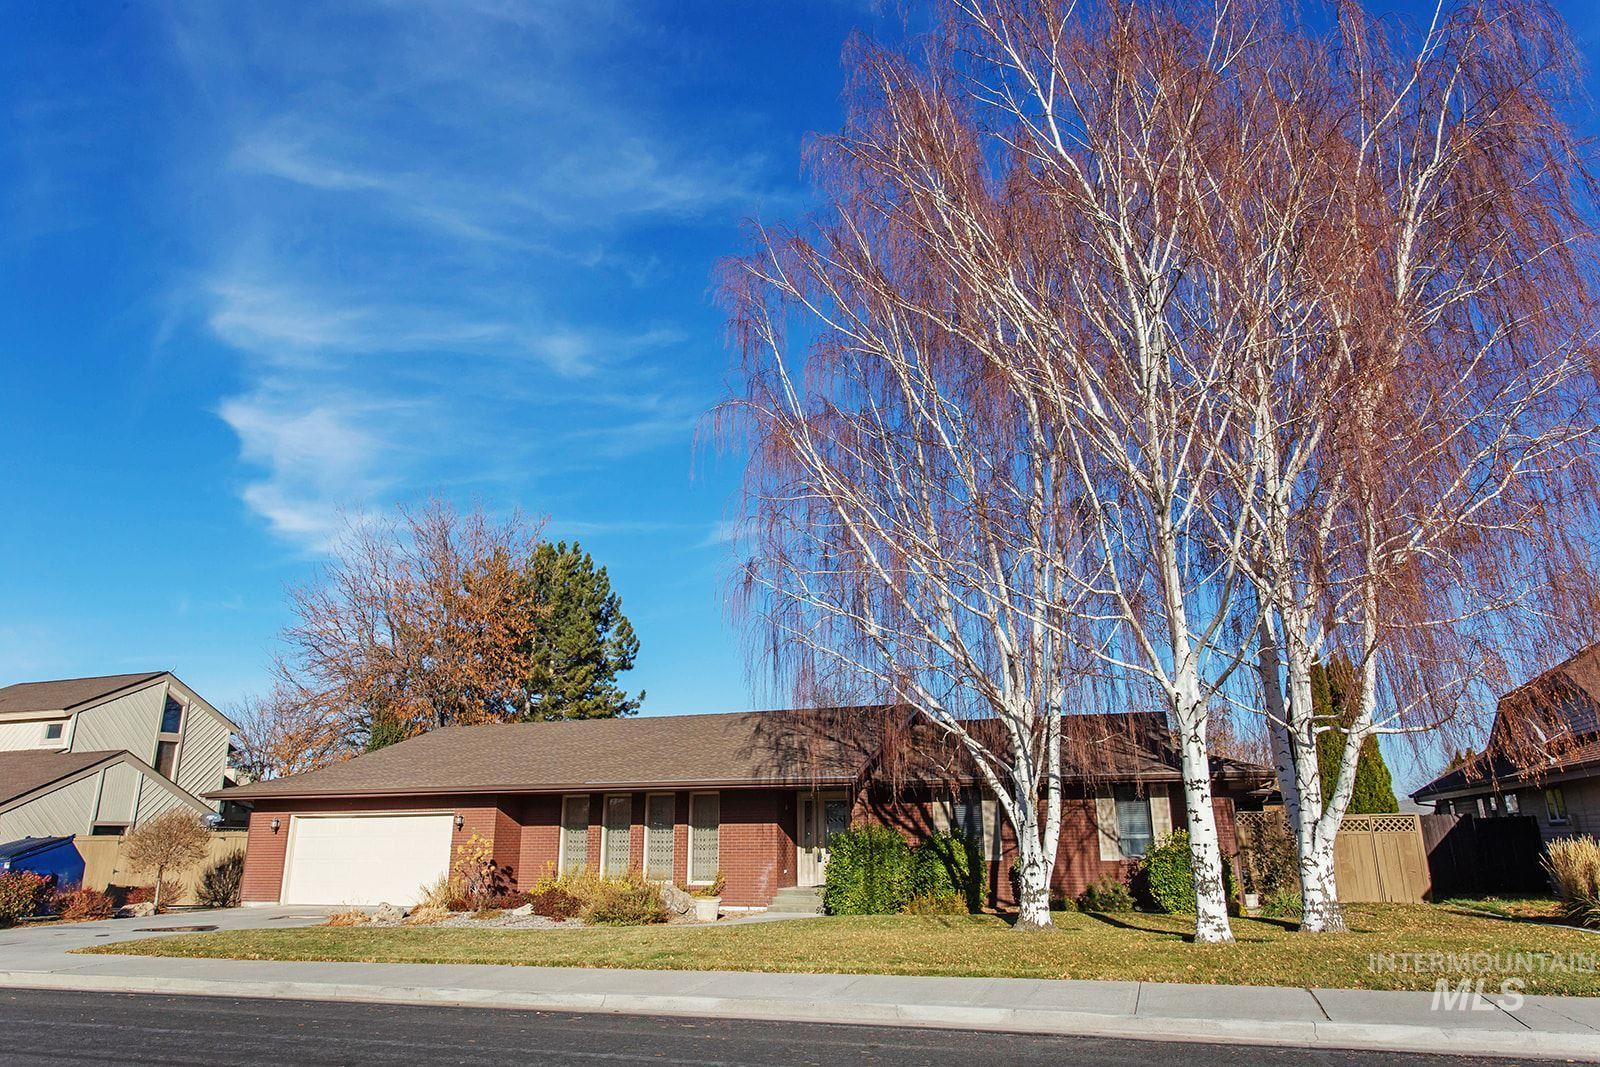 Photo of 610 Ballingrude Drive, Twin Falls, ID 83301 (MLS # 98787689)